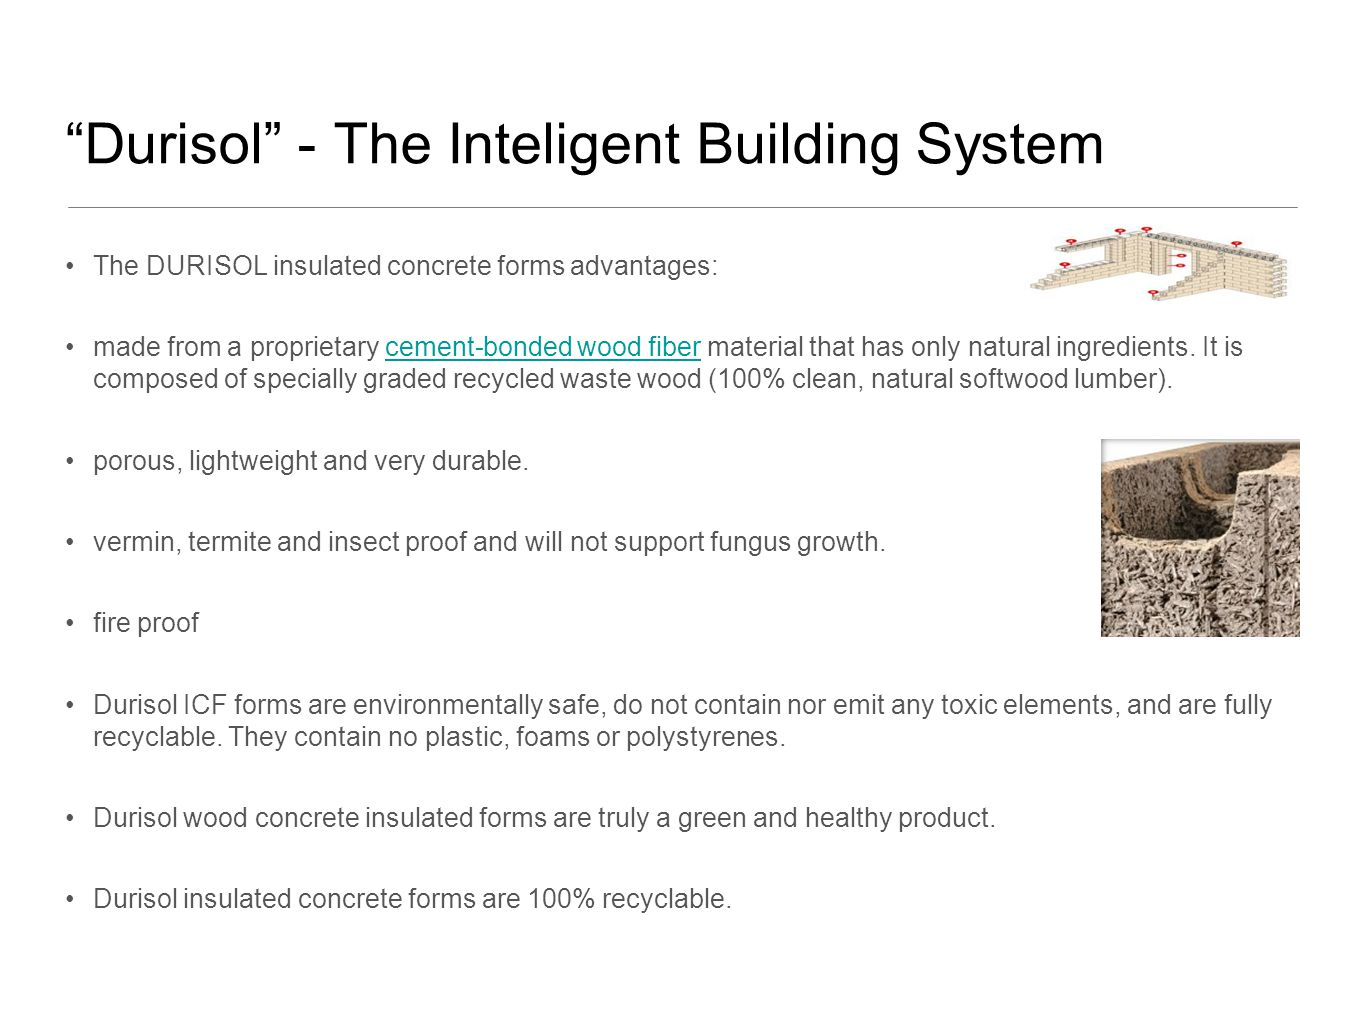 Durisol - The Inteligent Building System The DURISOL insulated concrete forms advantages: made from a proprietary cement-bonded wood fiber material that has only natural ingredients.